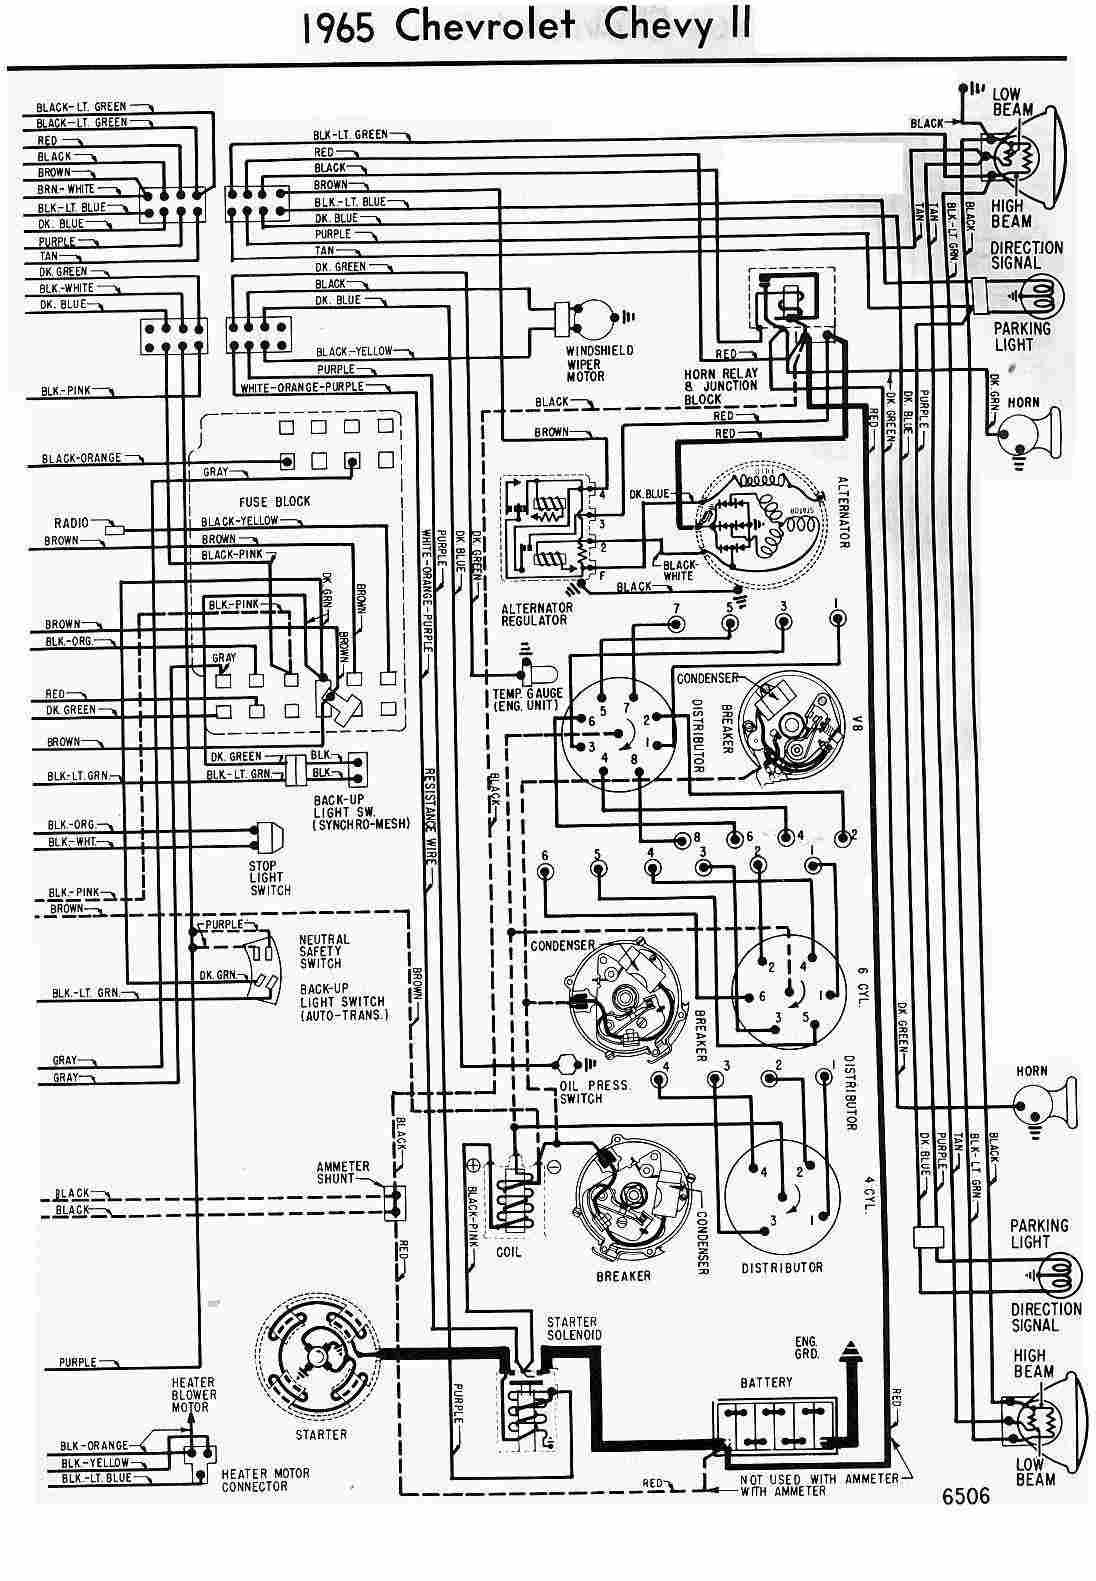 wiring diagram diagram of 1965 chevrolet chevy ii?t=1508393184 chevrolet car manuals, wiring diagrams pdf & fault codes 1967 chevy ii wiring diagram at fashall.co